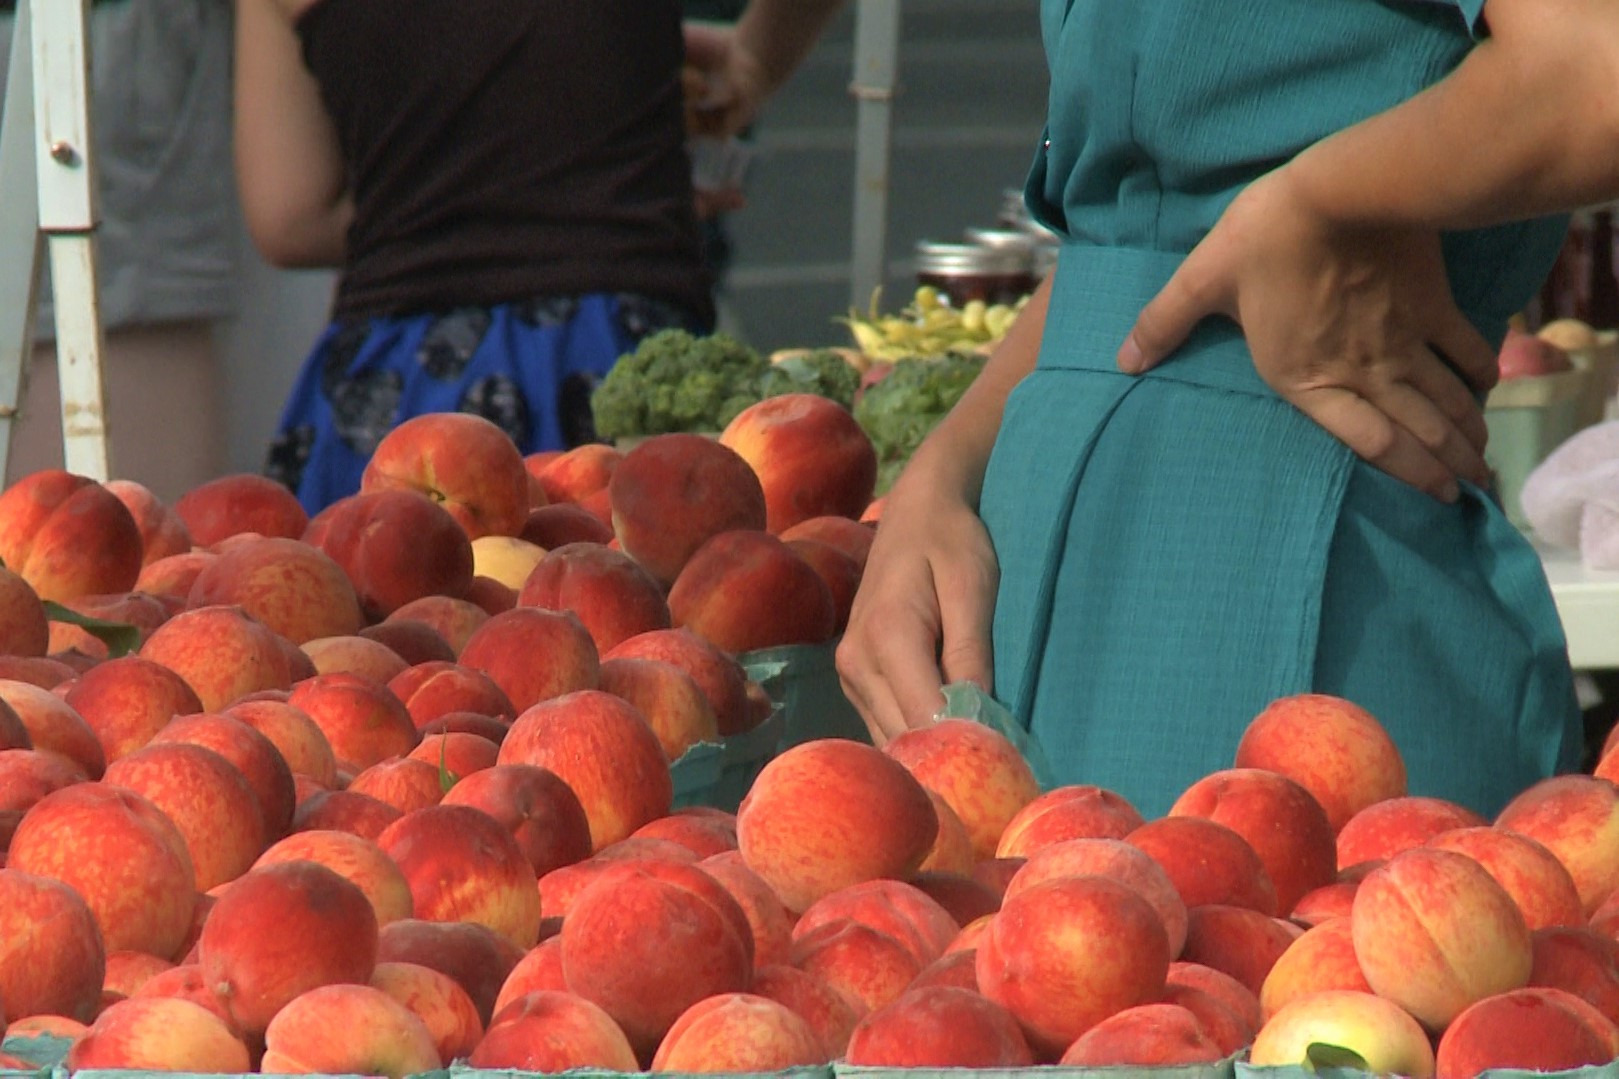 A vendor stands by her peaches at the Farmers' Market. Summer 2019.